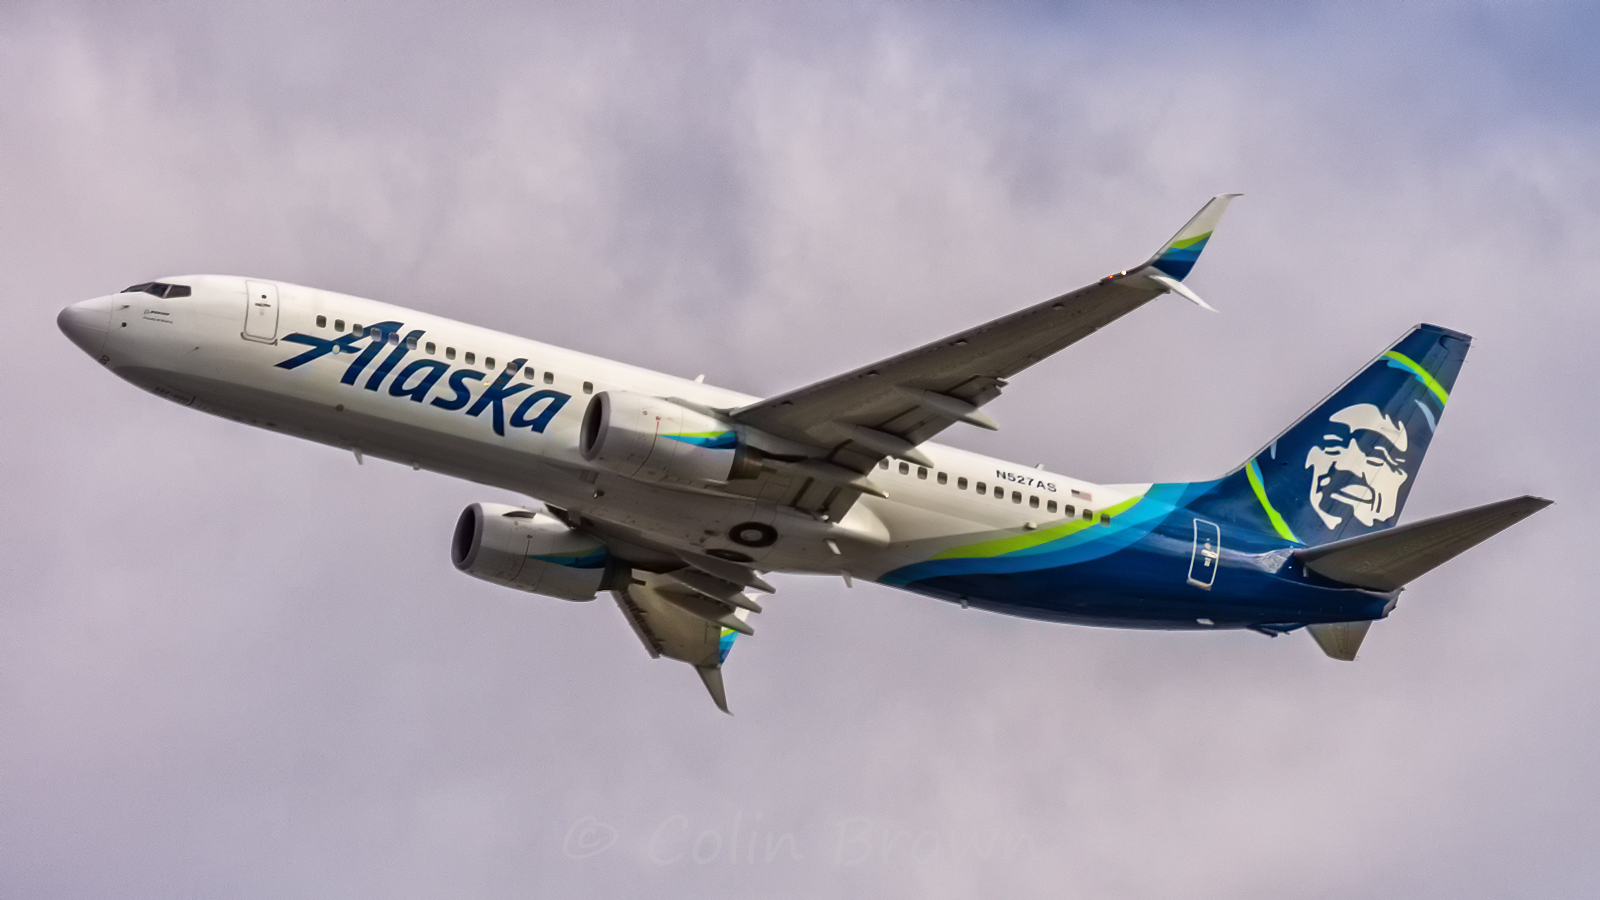 Most on-time U.S. Airlines: Alaska Airlines